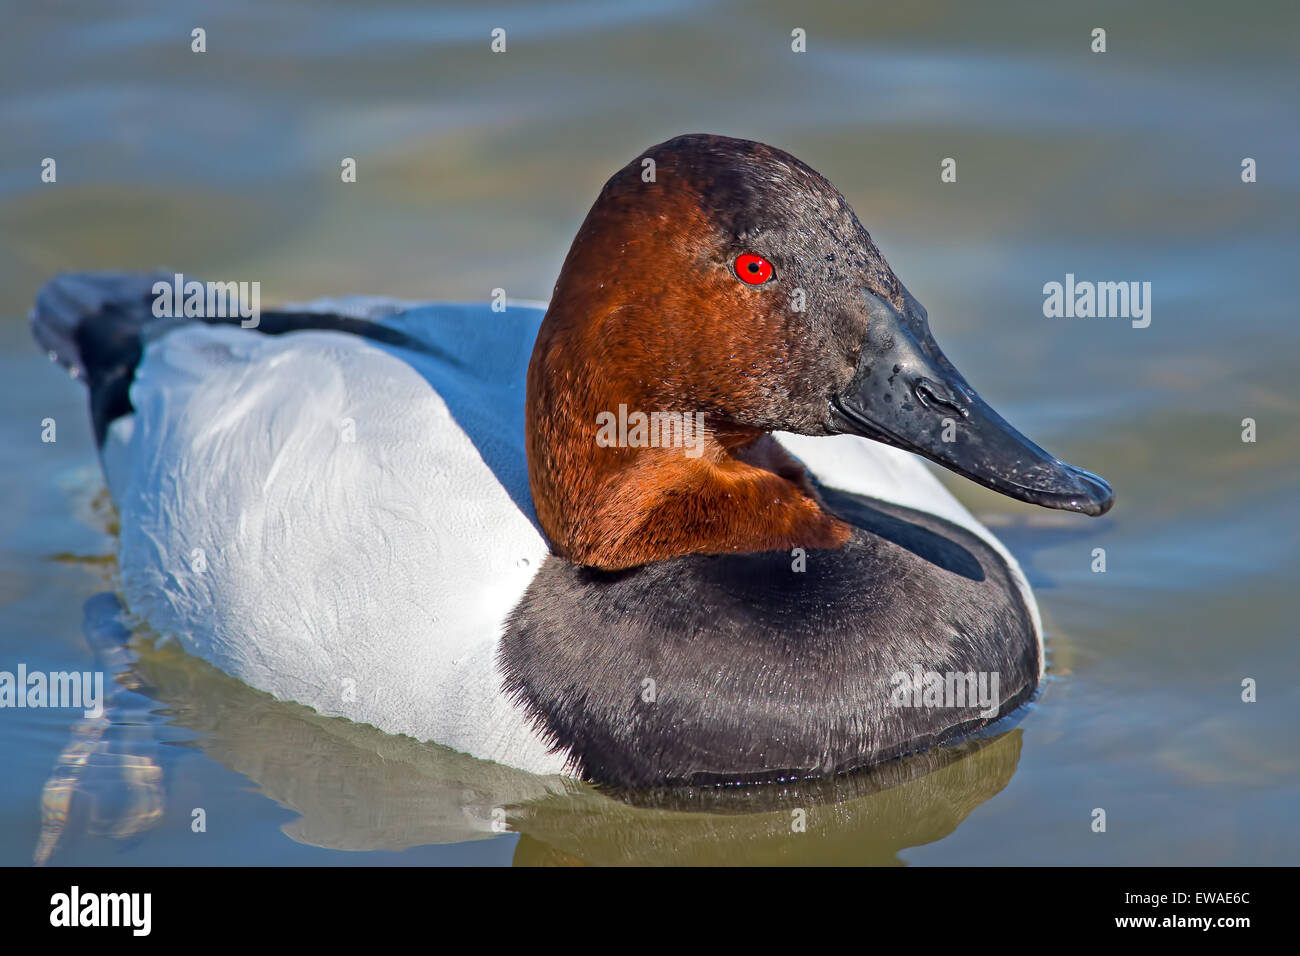 Canvasback Duck floating in the water - Stock Image